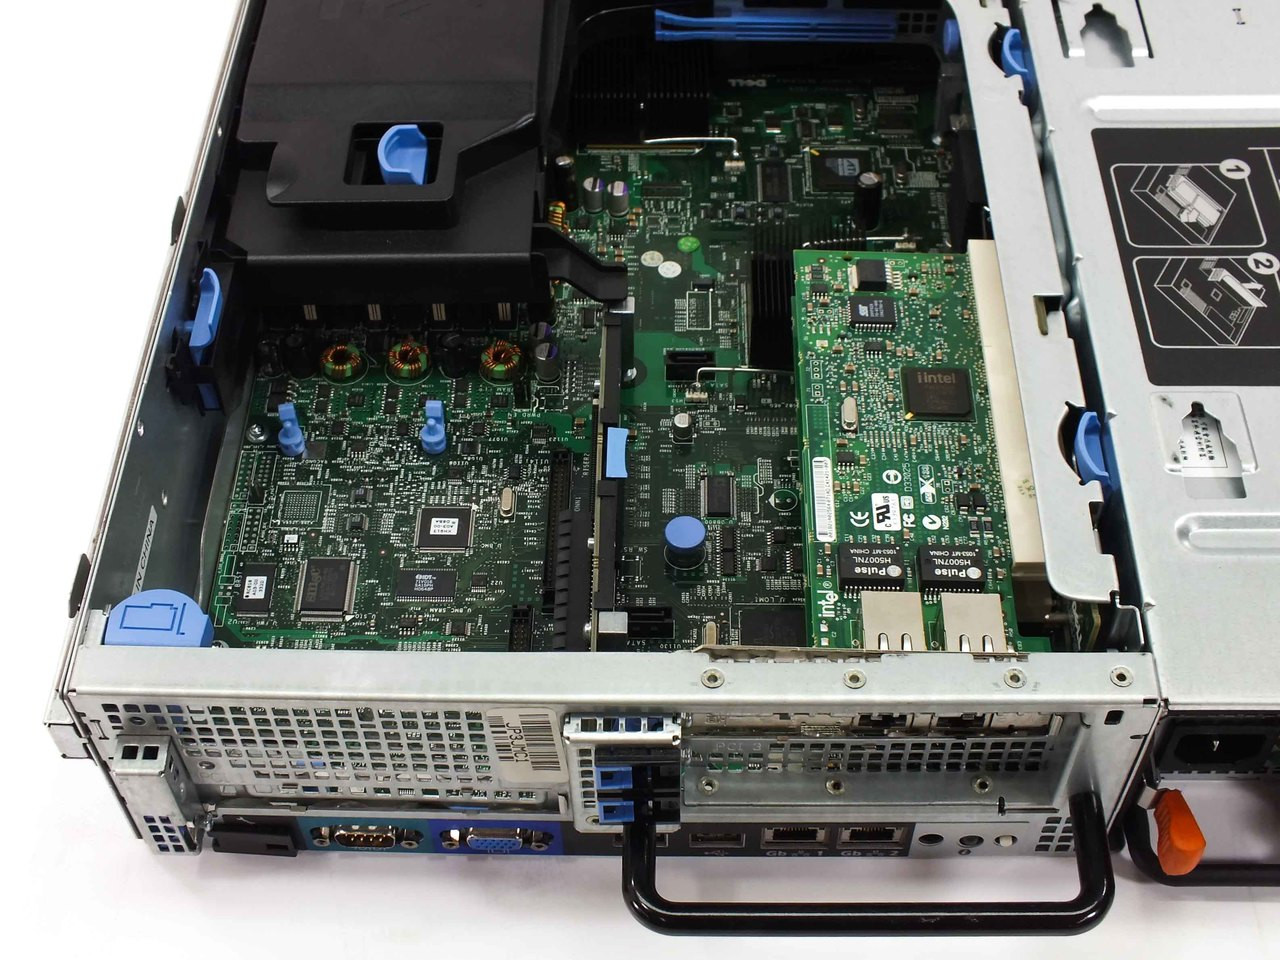 Dell Poweredge 2950 Intel Xeon Dual Core 30ghz Rackmount Server Wiring Diagram 4gb Ram